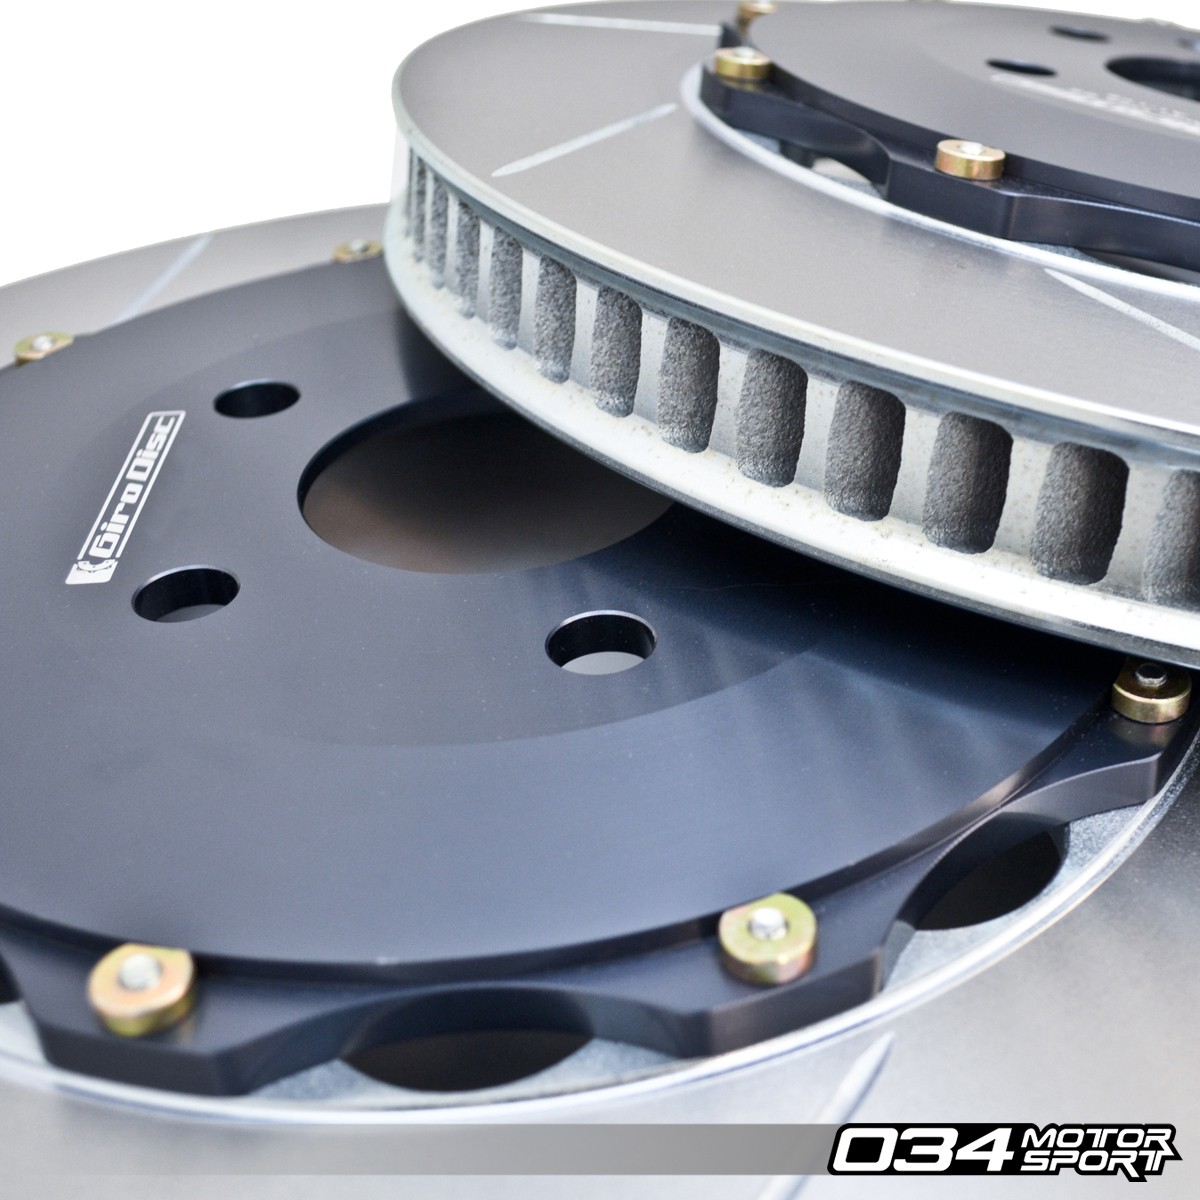 GiroDisc Front 2-Piece Floating Rotor Pair for 8J Audi TTRS (MkII) | GIR-A1-152